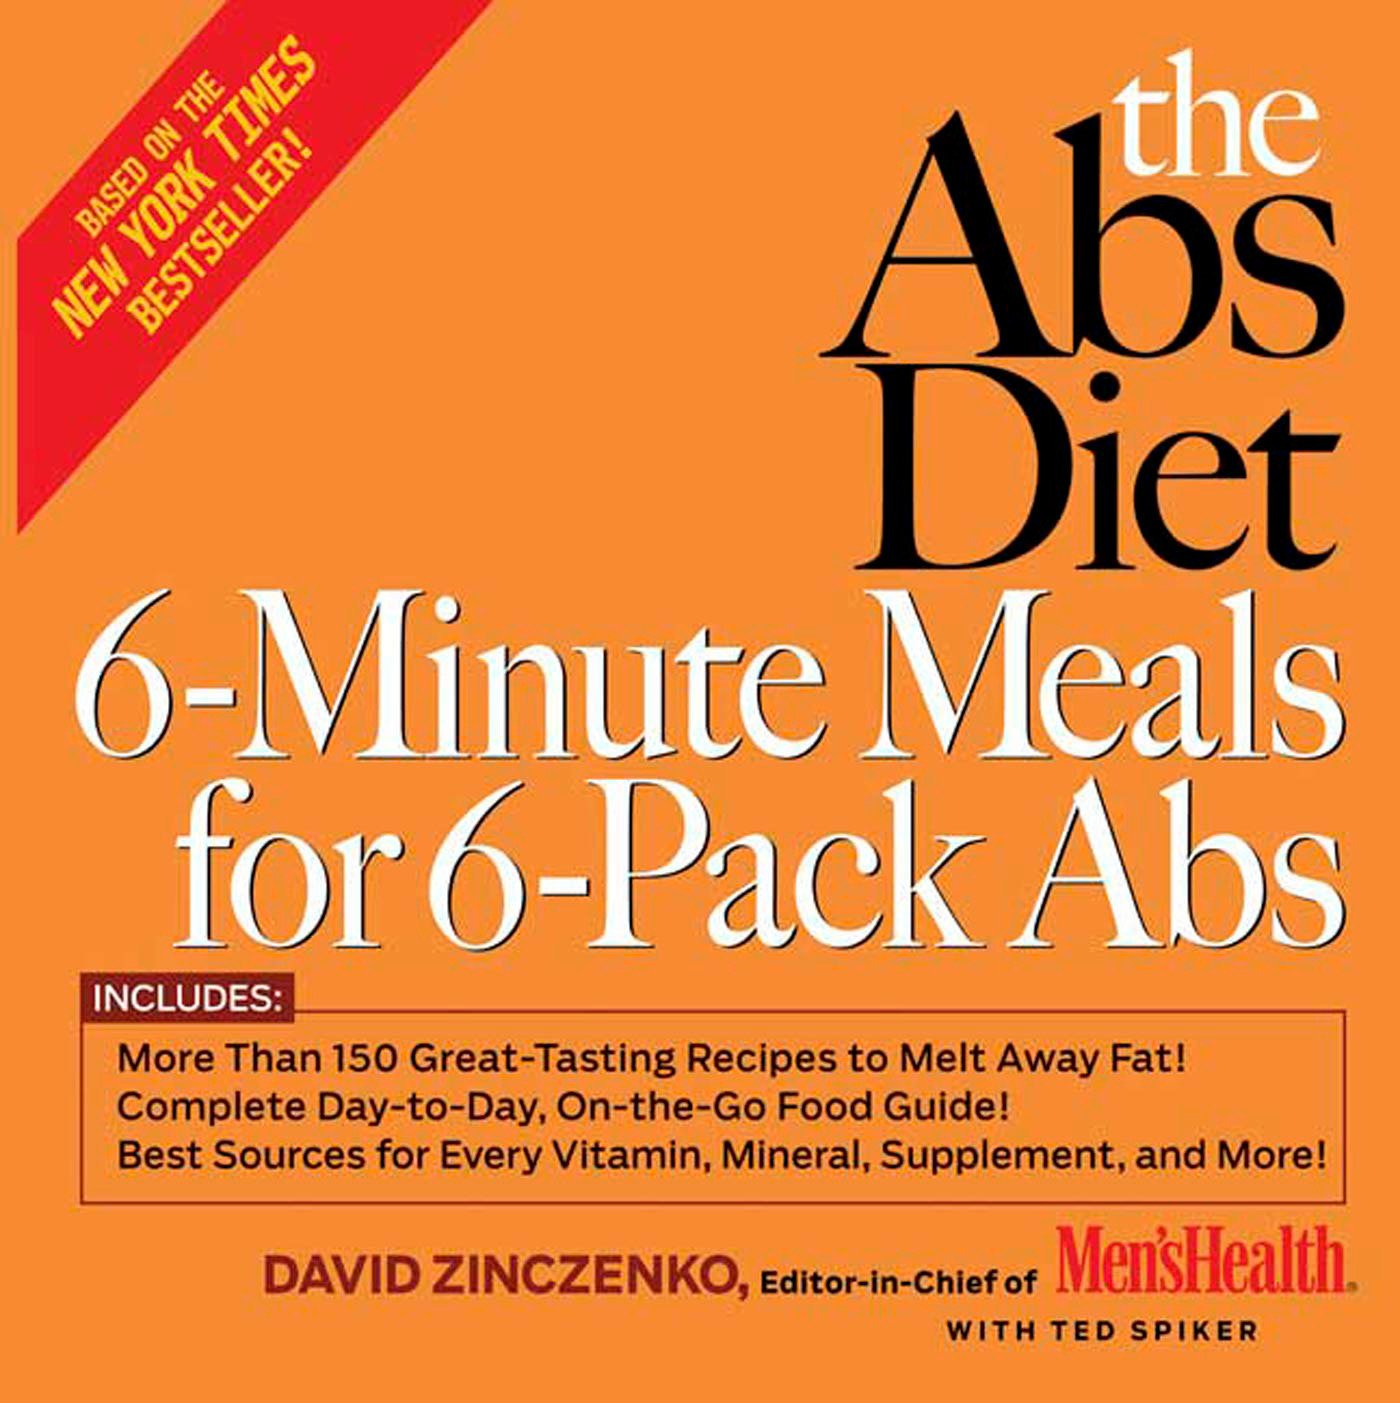 Diet 6 Minute Meals 6 Pack Great Tasting product image